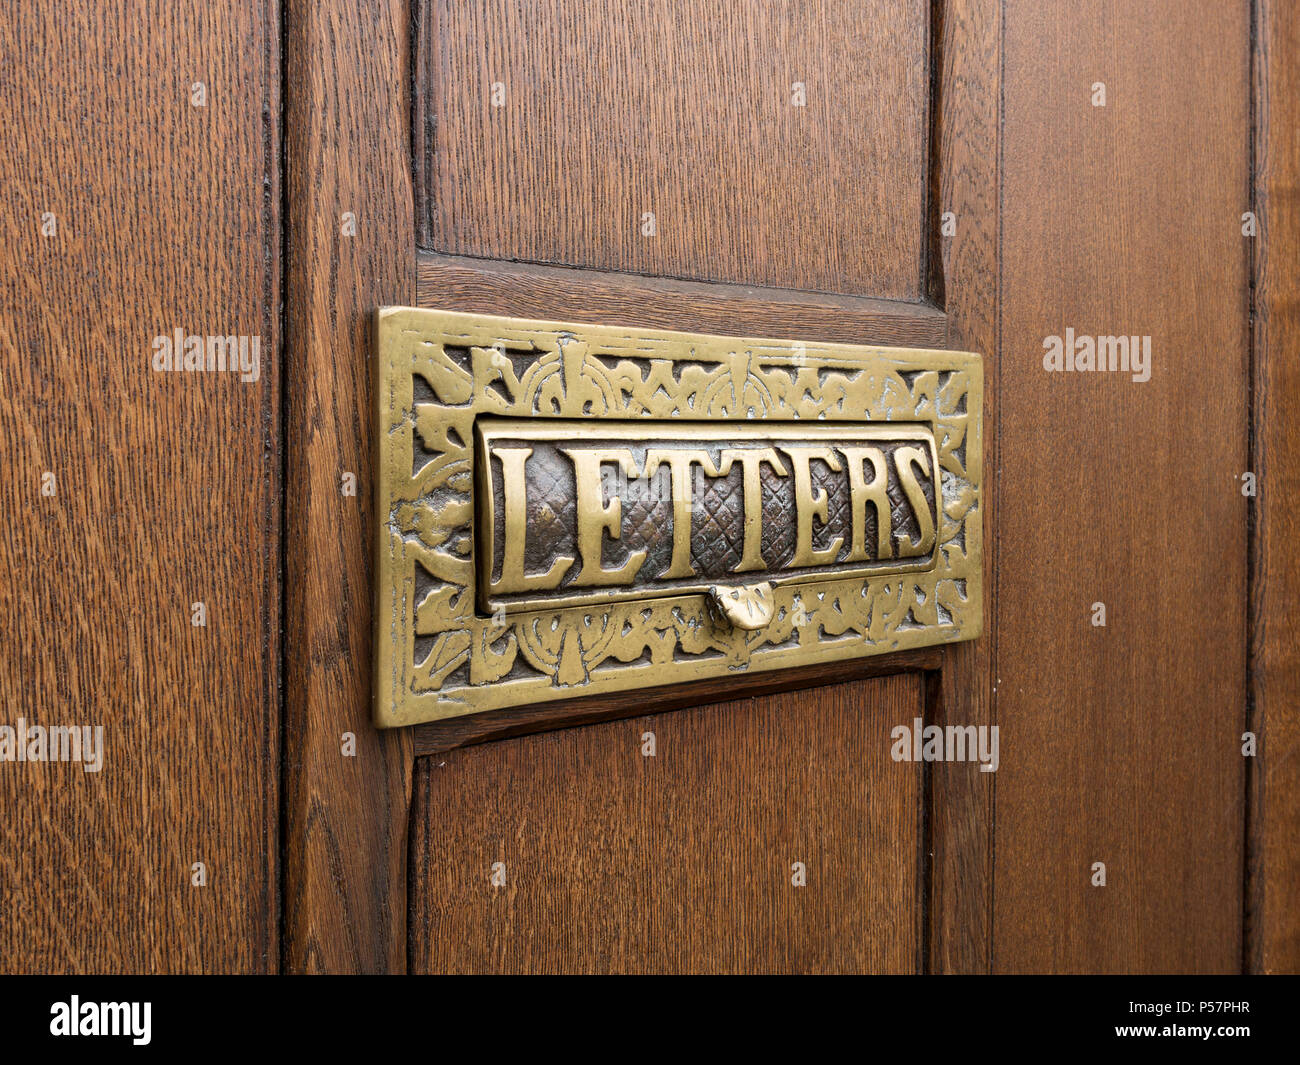 Old ornate decorative cast brass metal house letterbox with the word 'letters' set in wooden door - Stock Image